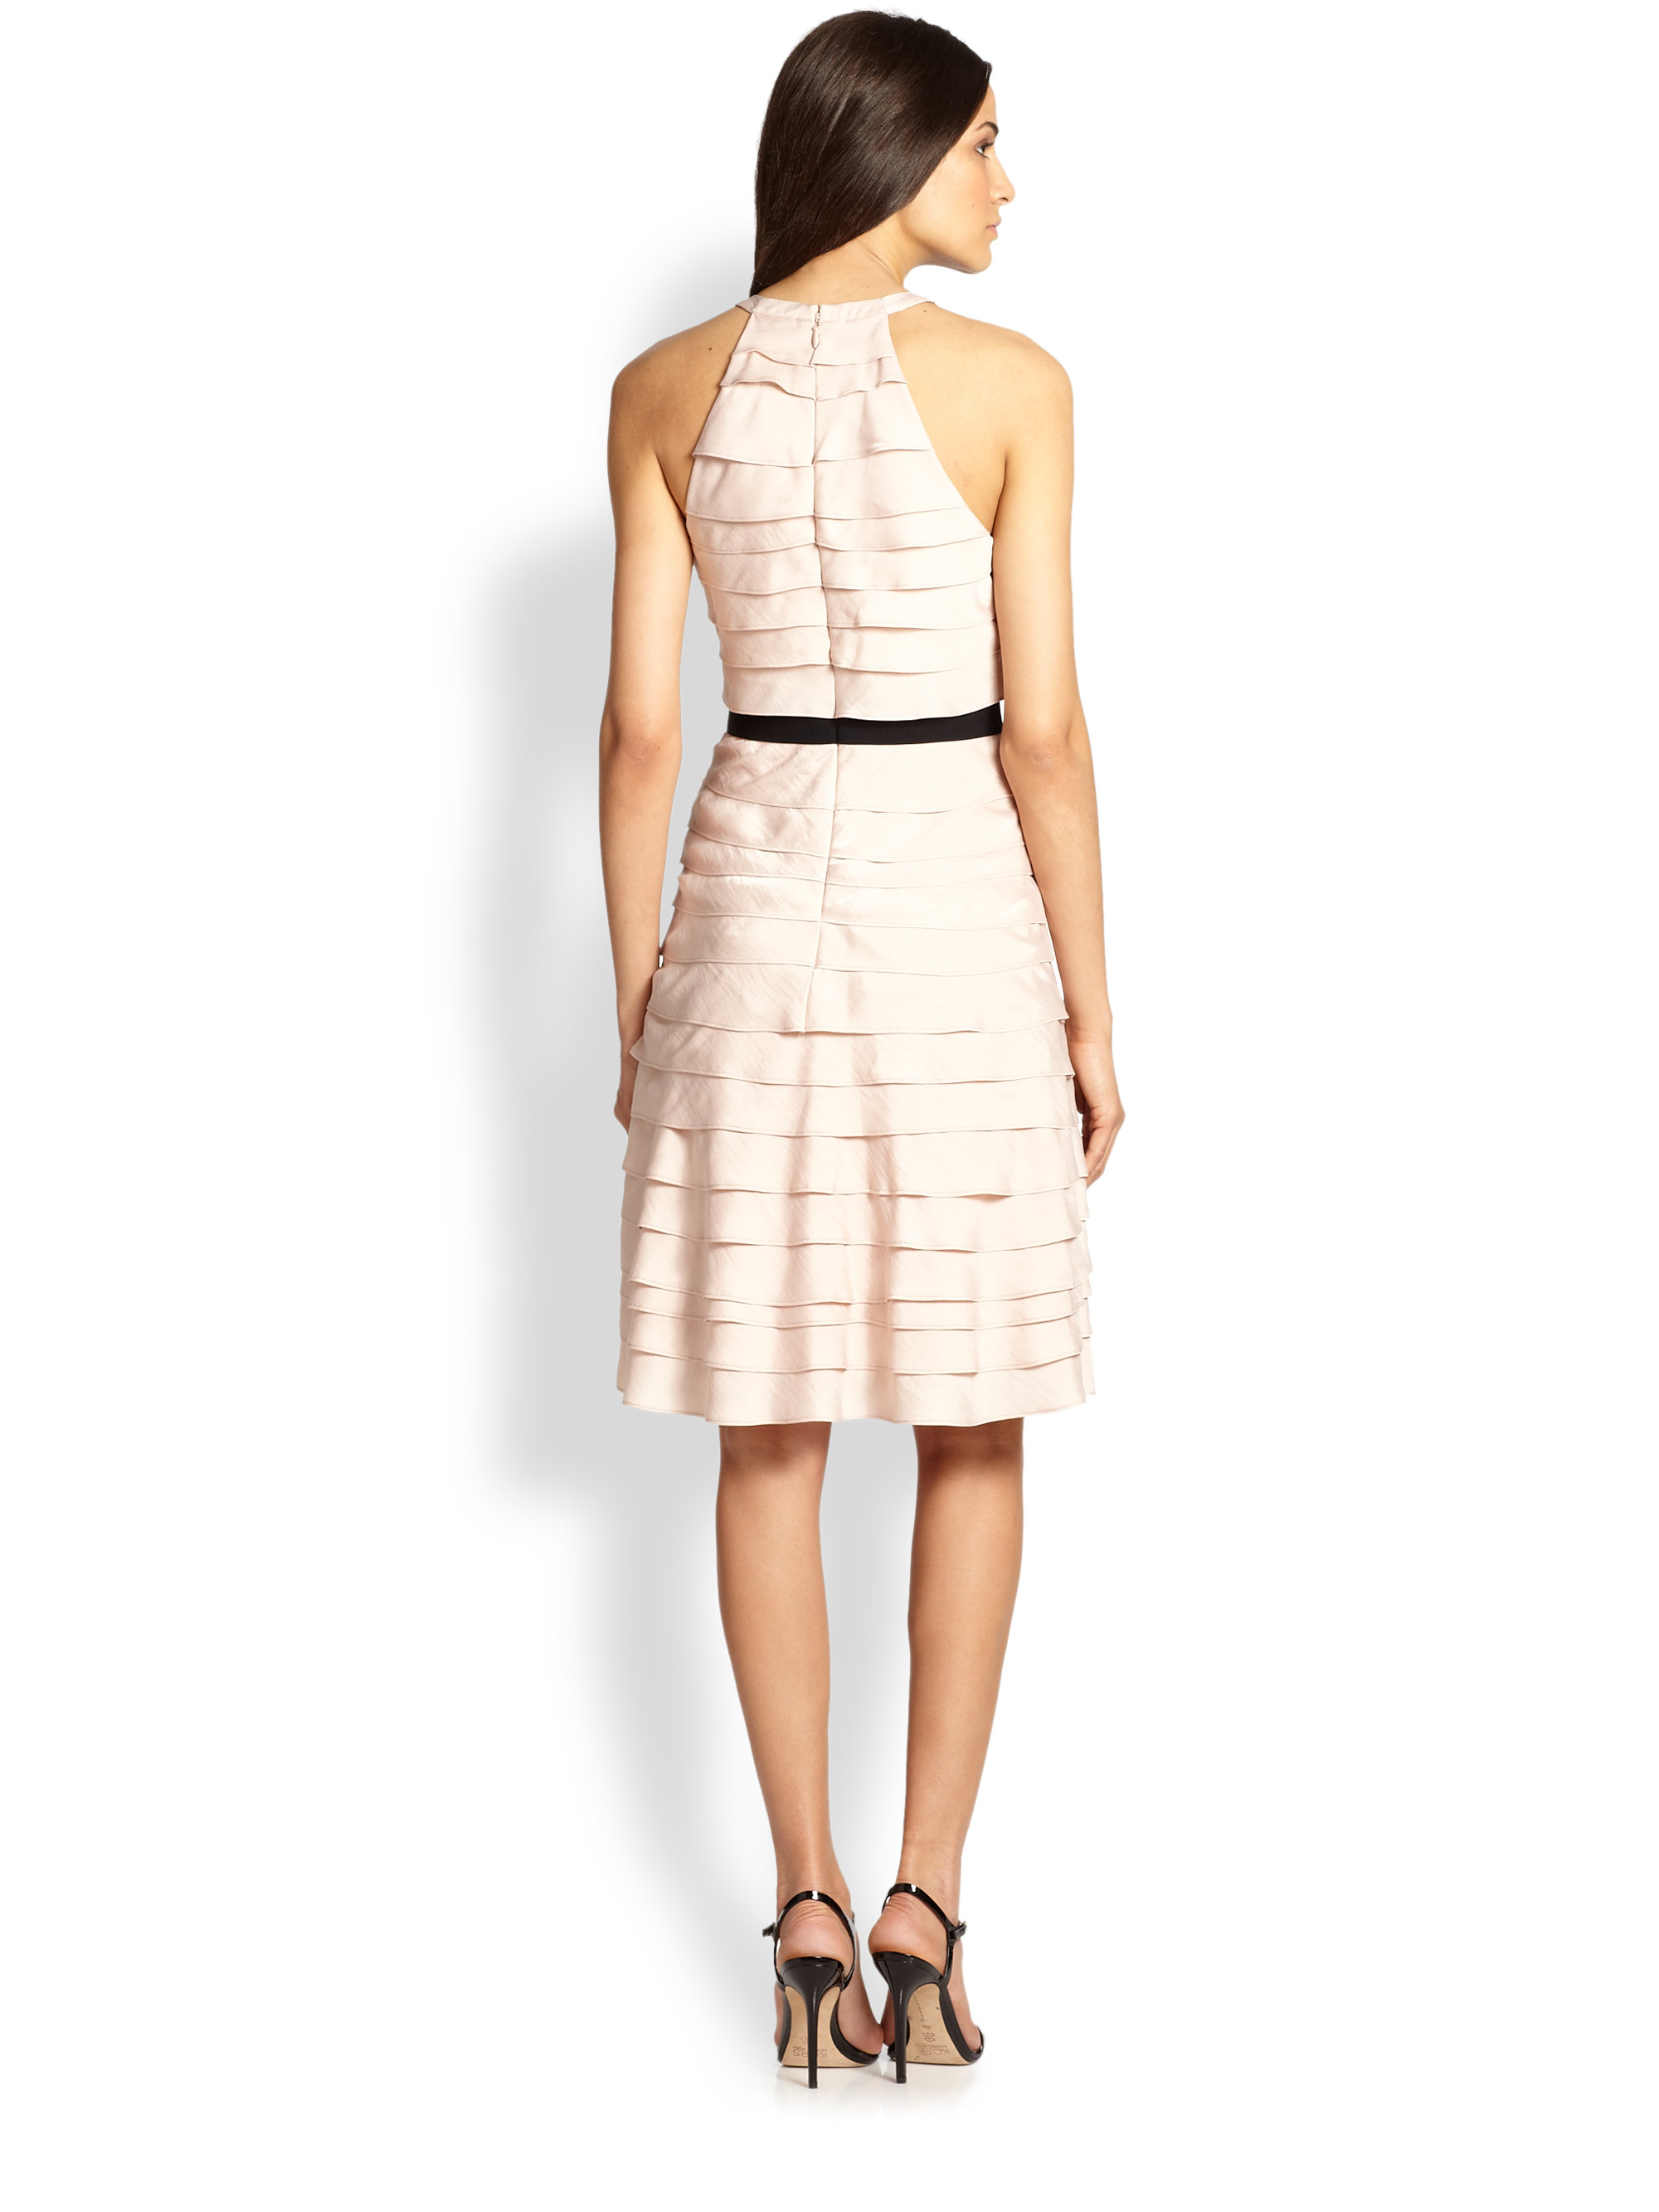 f44e96f4 Gallery. Previously sold at: Saks Fifth Avenue · Women's Tiered Dresses